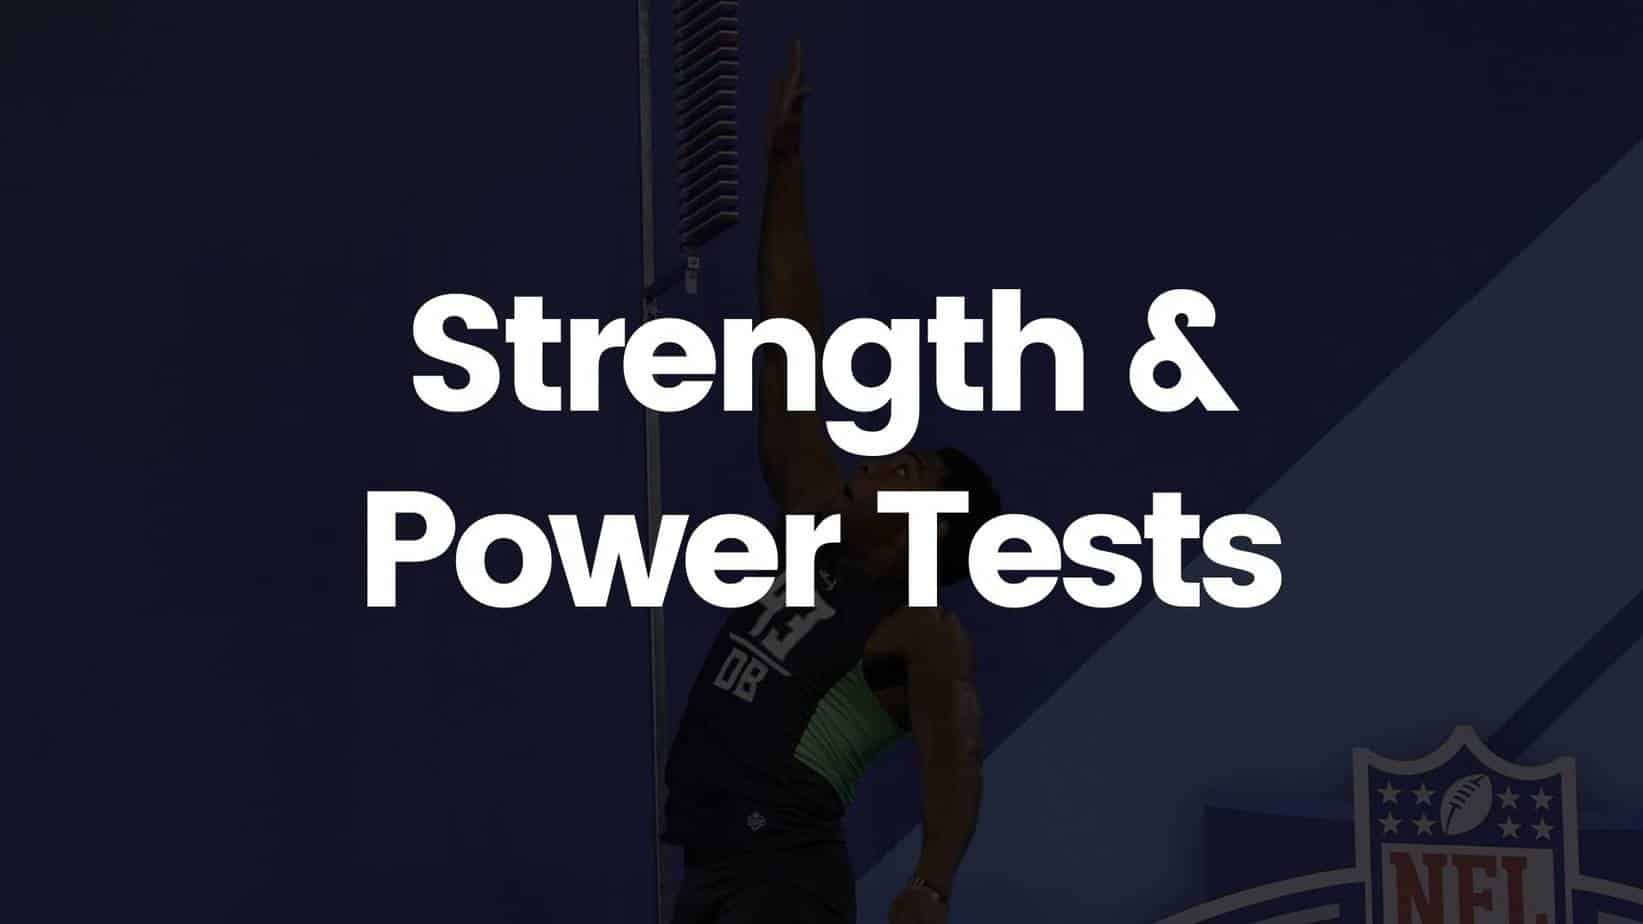 Strength & Power Tests